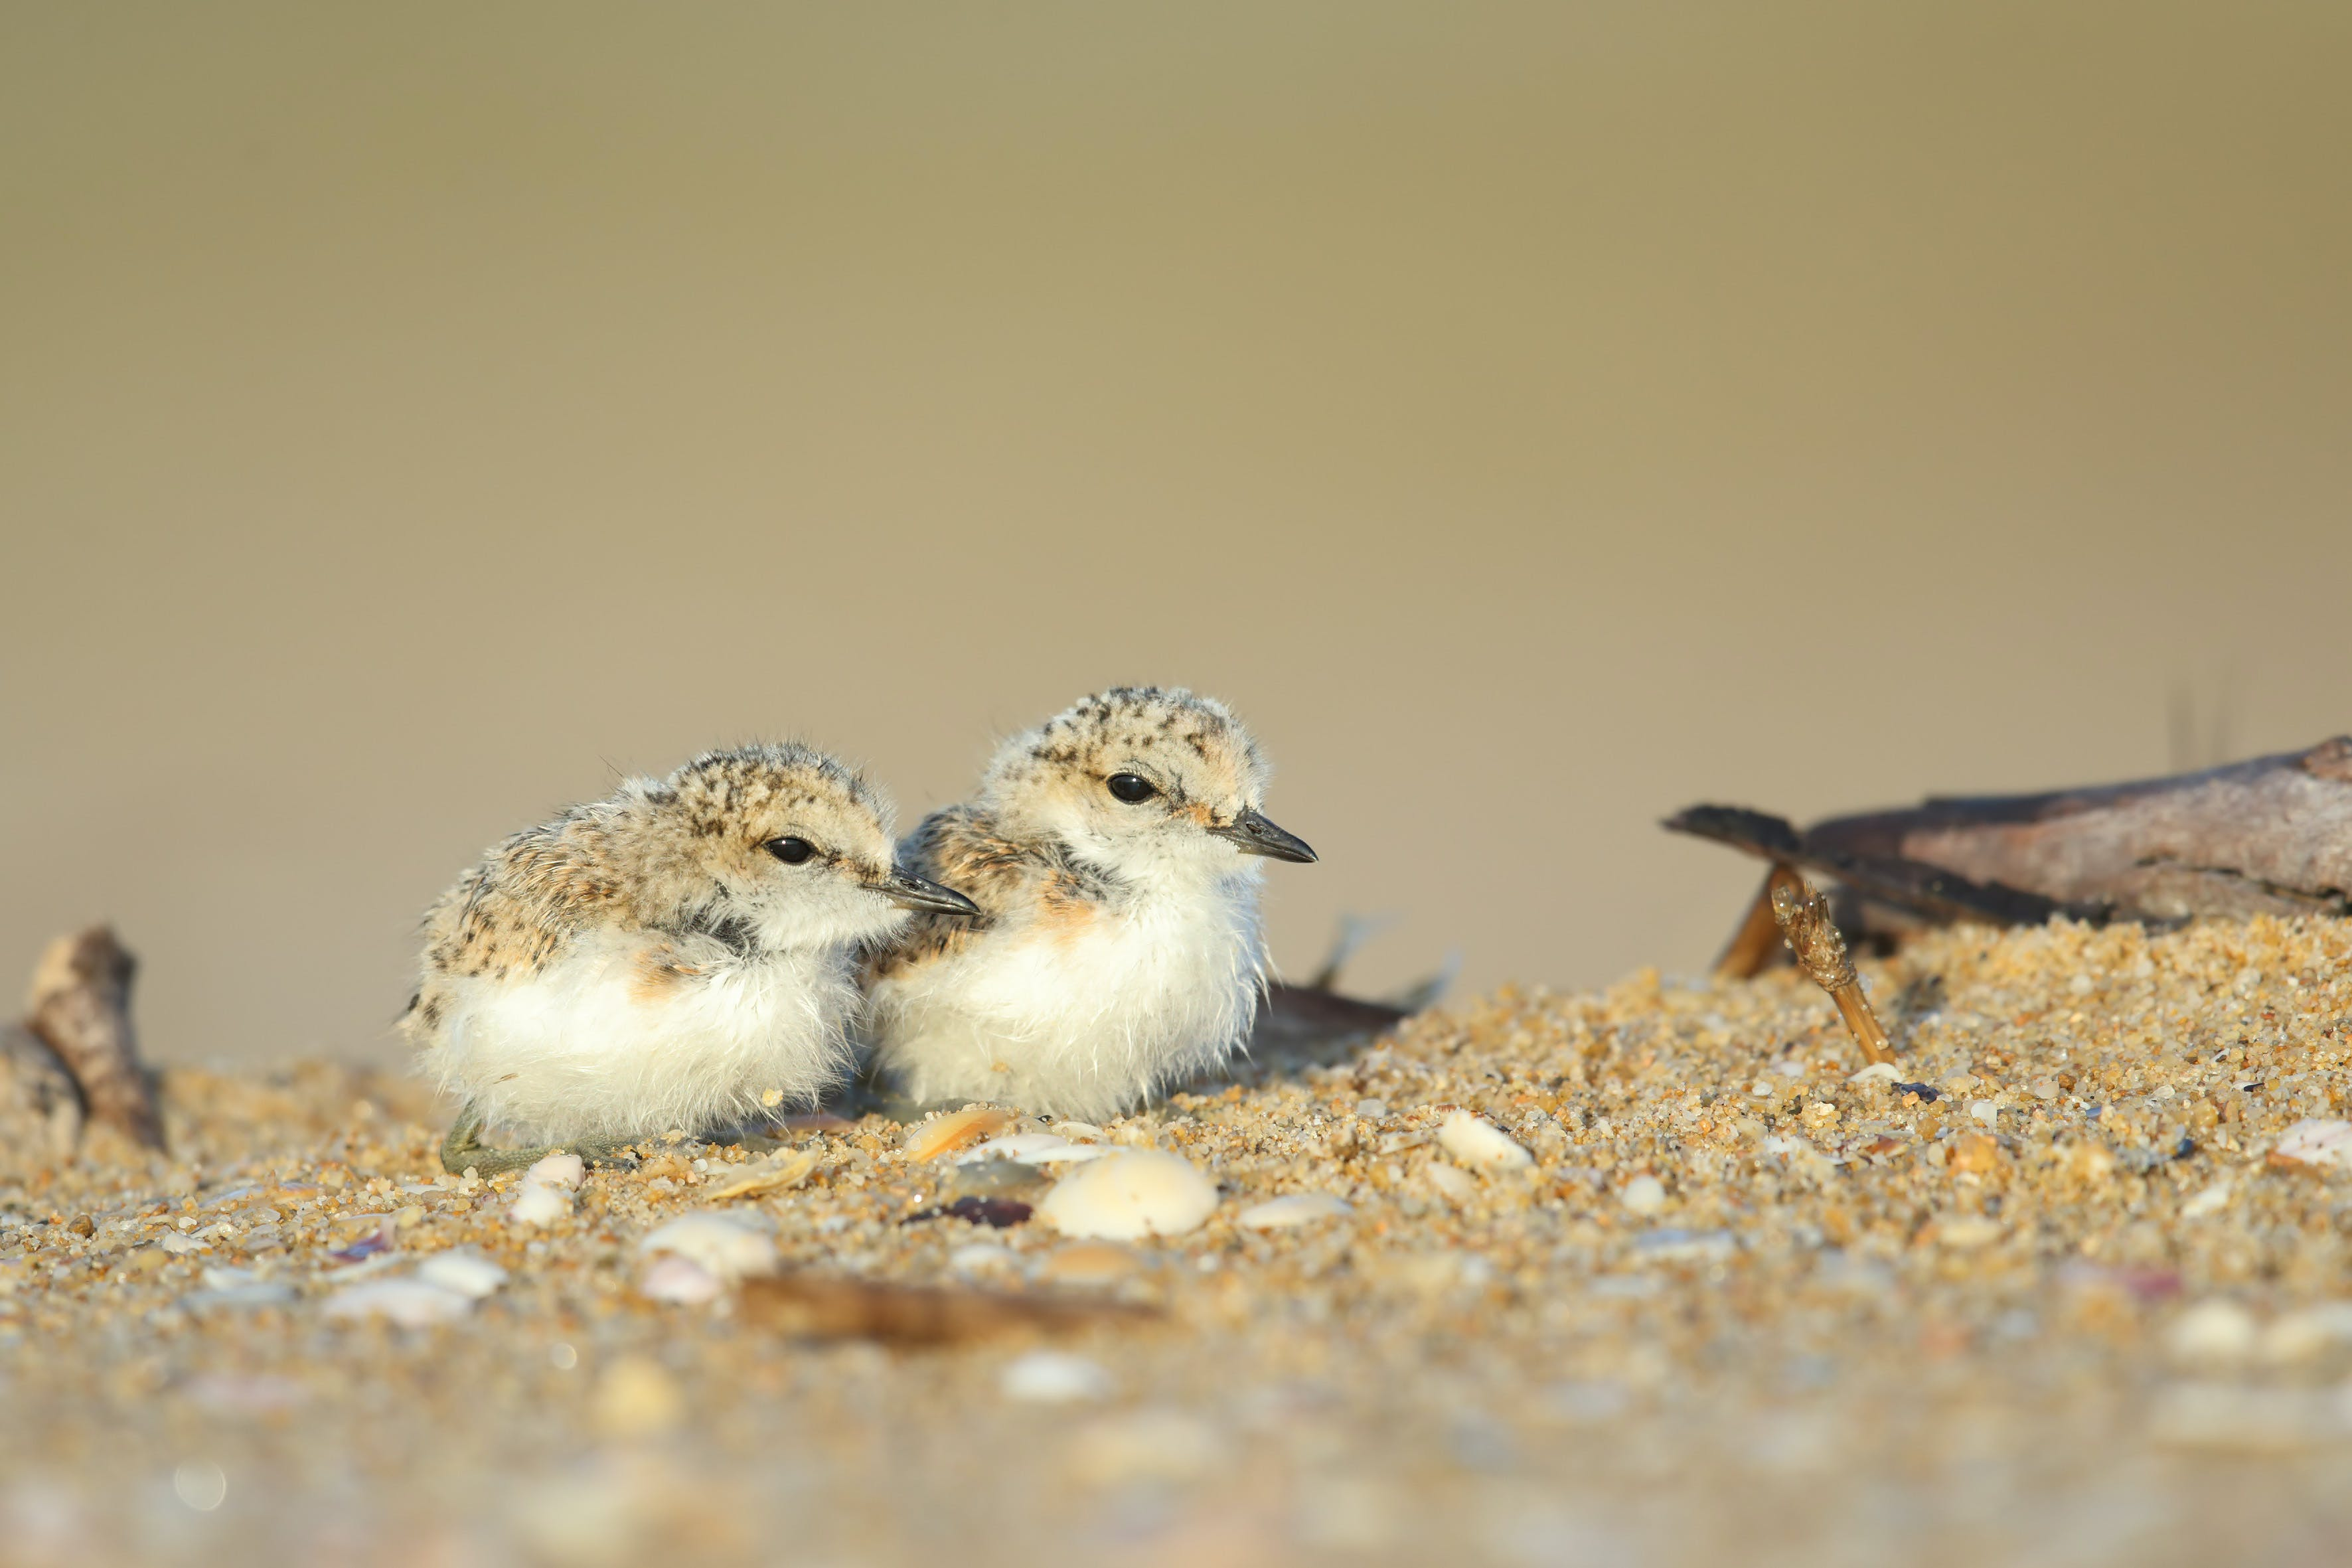 Red-capped plover chicks on beach. Photo: L Berzins.